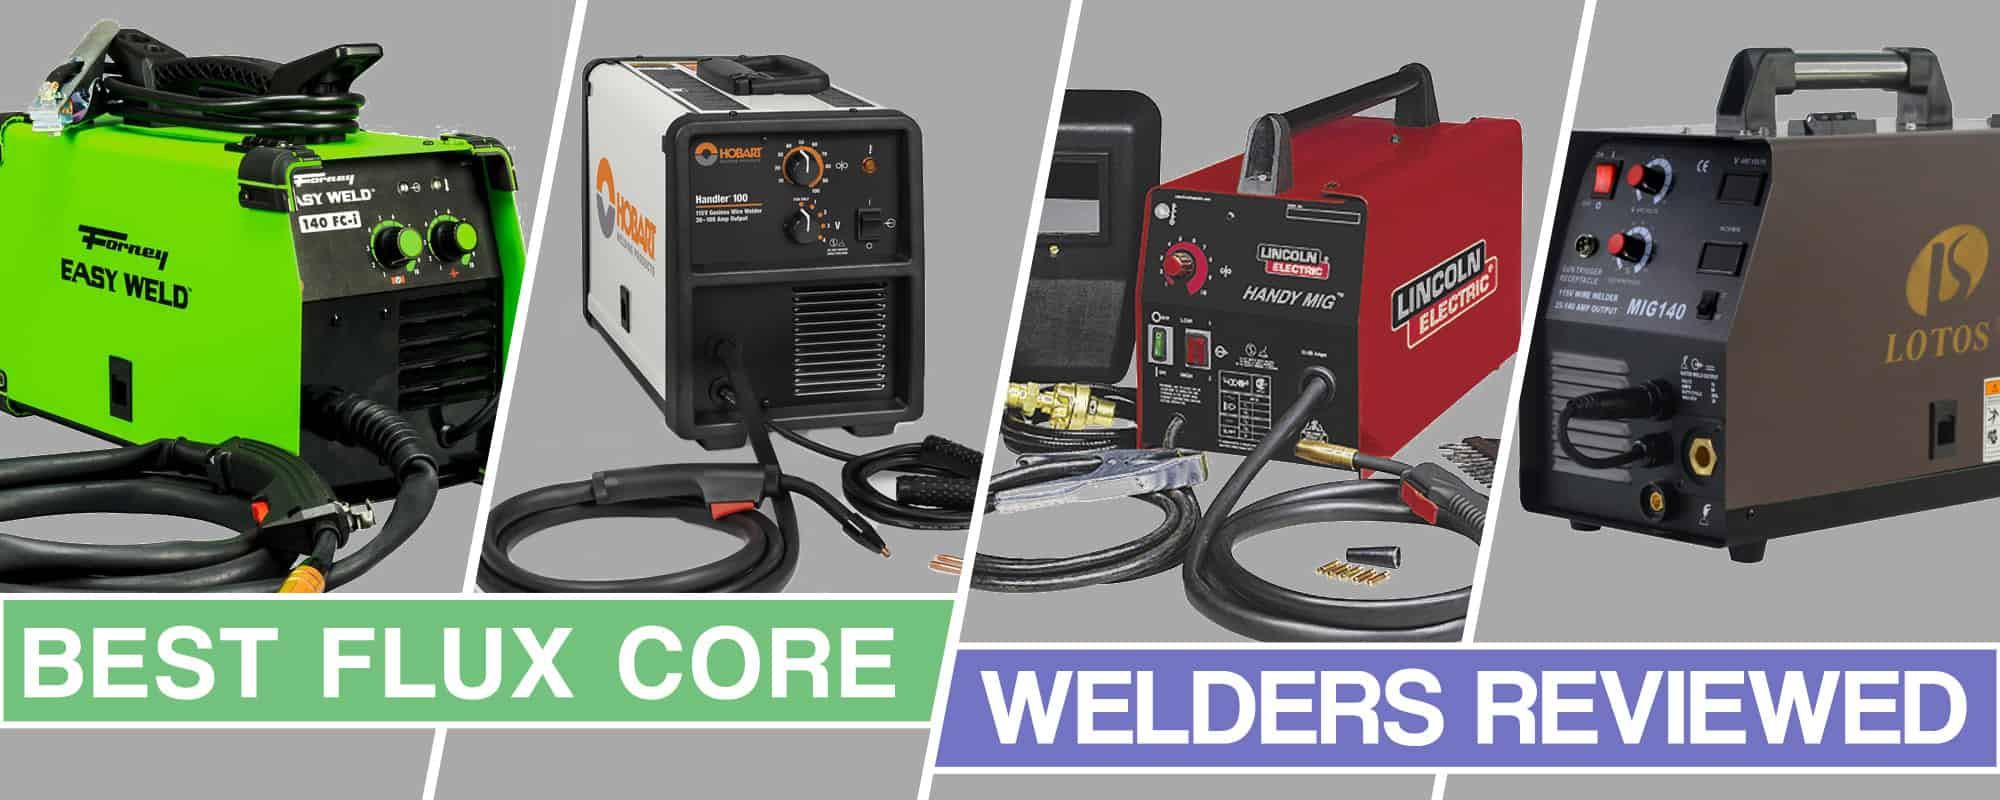 Best Flux Core Welders Reviews And Buyers Guide 2020